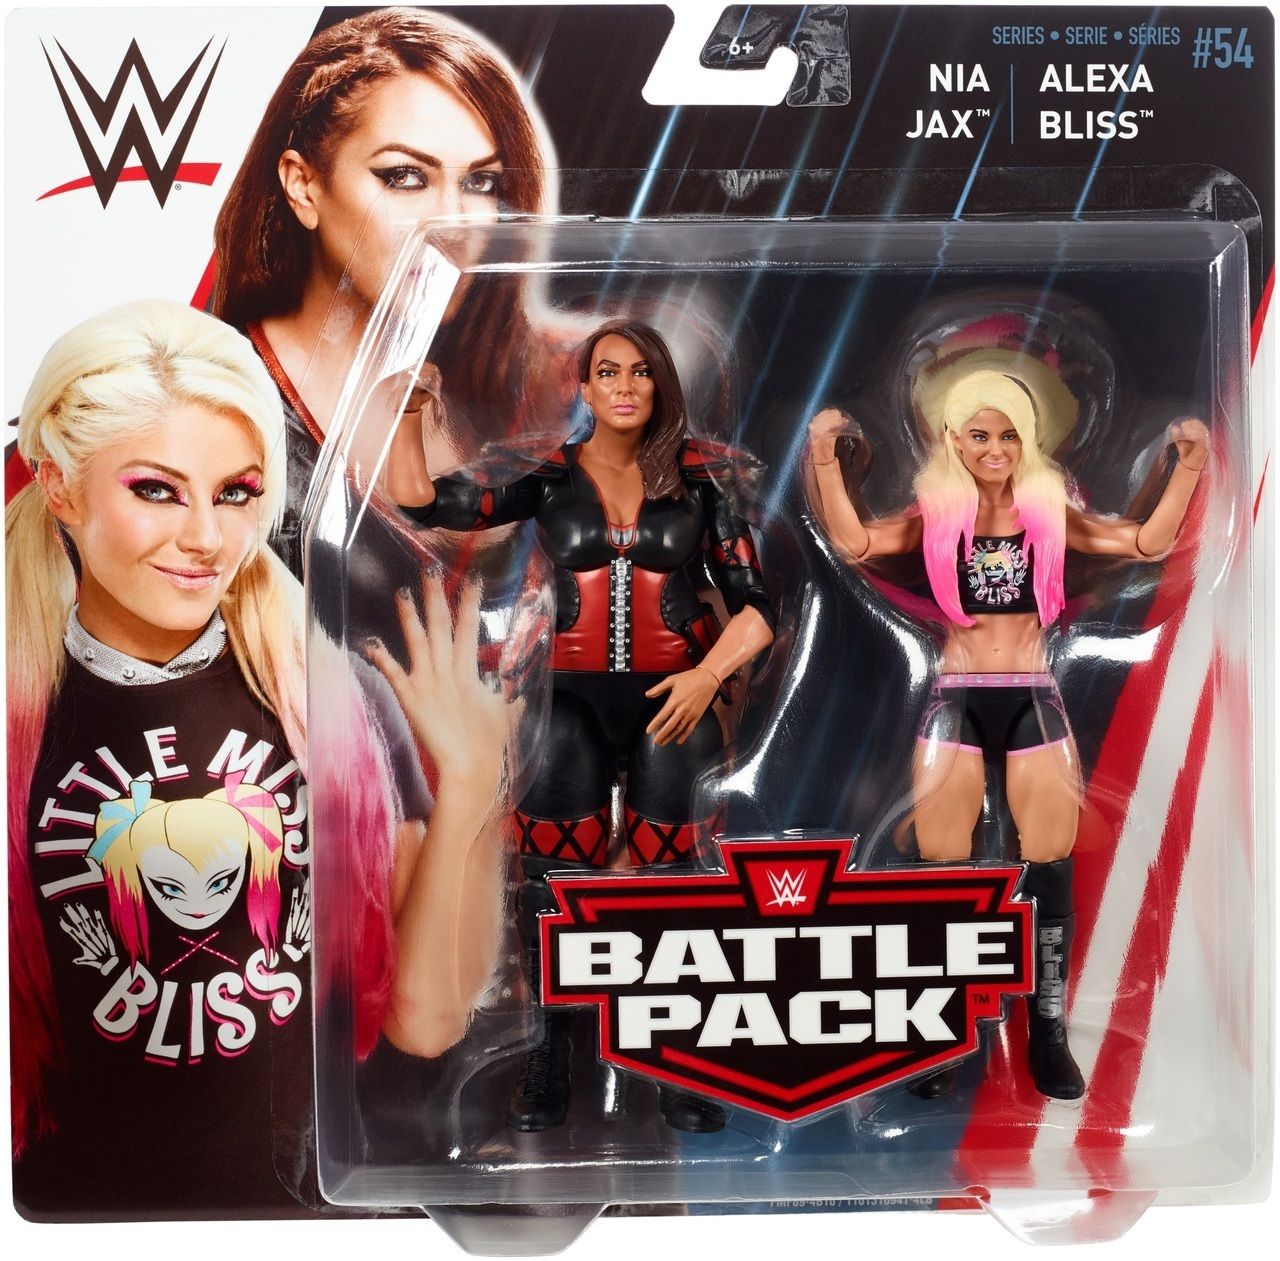 Alexa Bliss & Nia Jax WWE Mattel Battle Pack Series 54 Action Figures